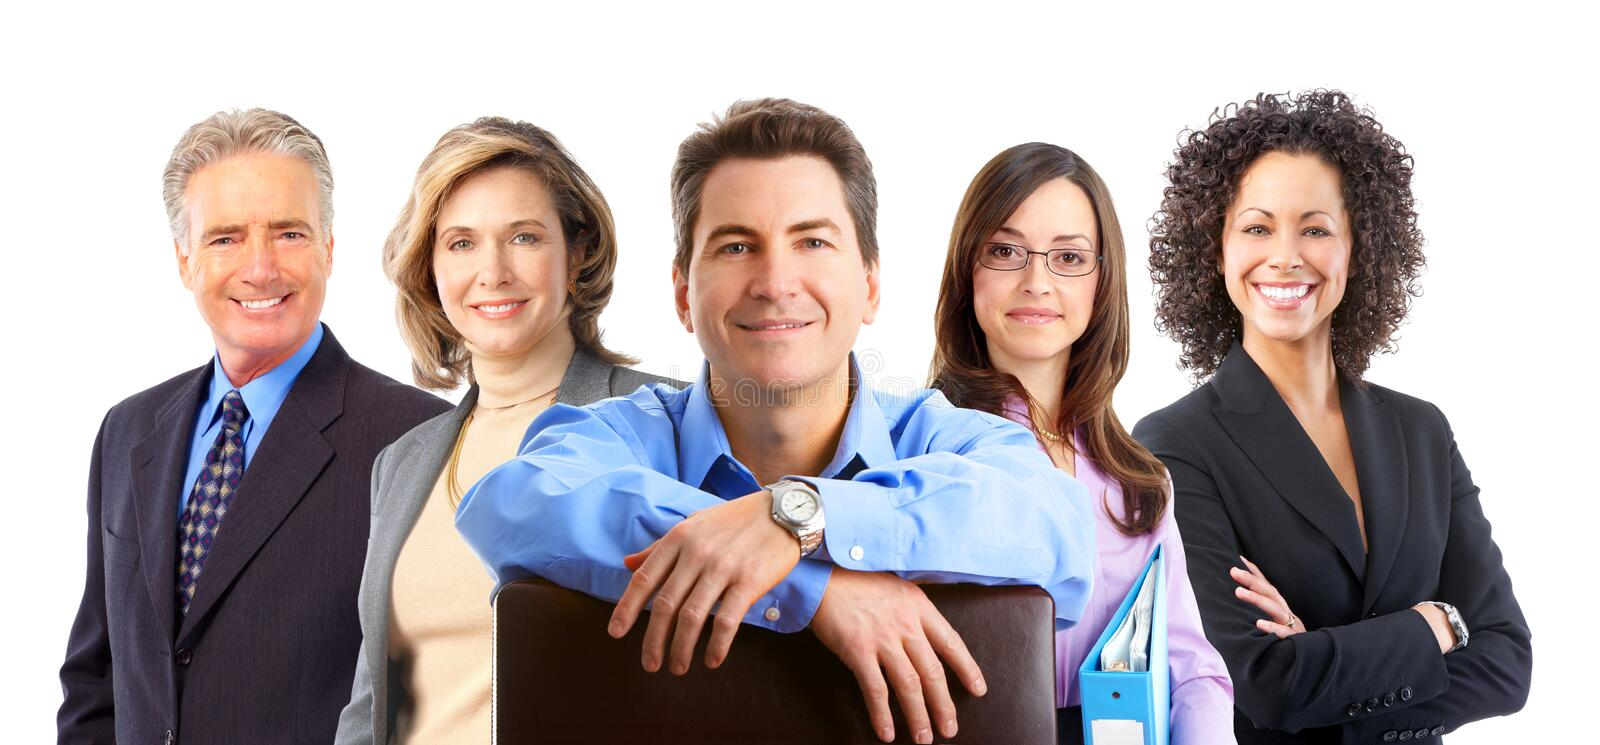 Business people. Group of business people. Isolated over white background stock images